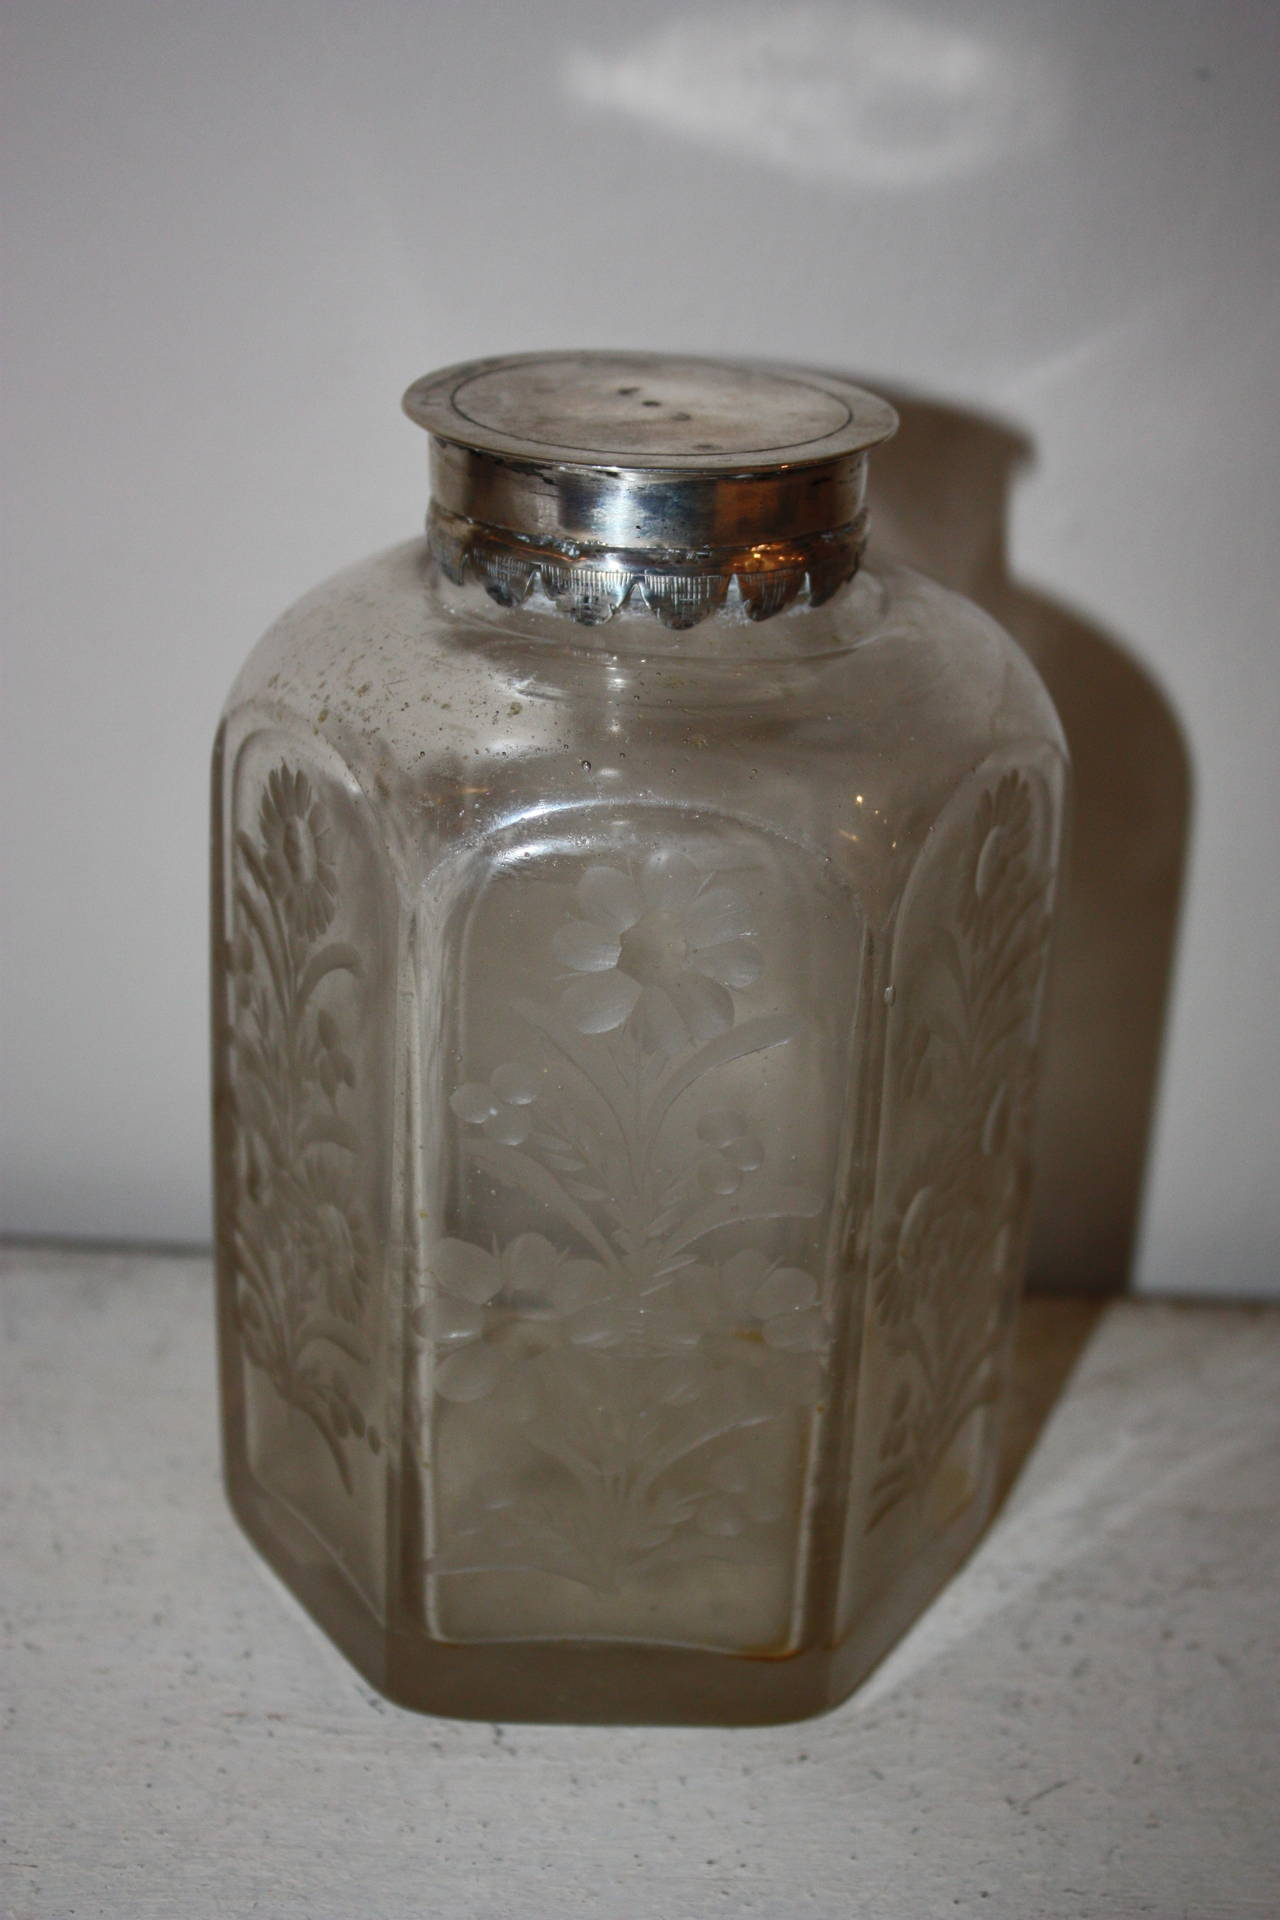 Very beautiful glass bottle with silver lid and engraved flower motives.